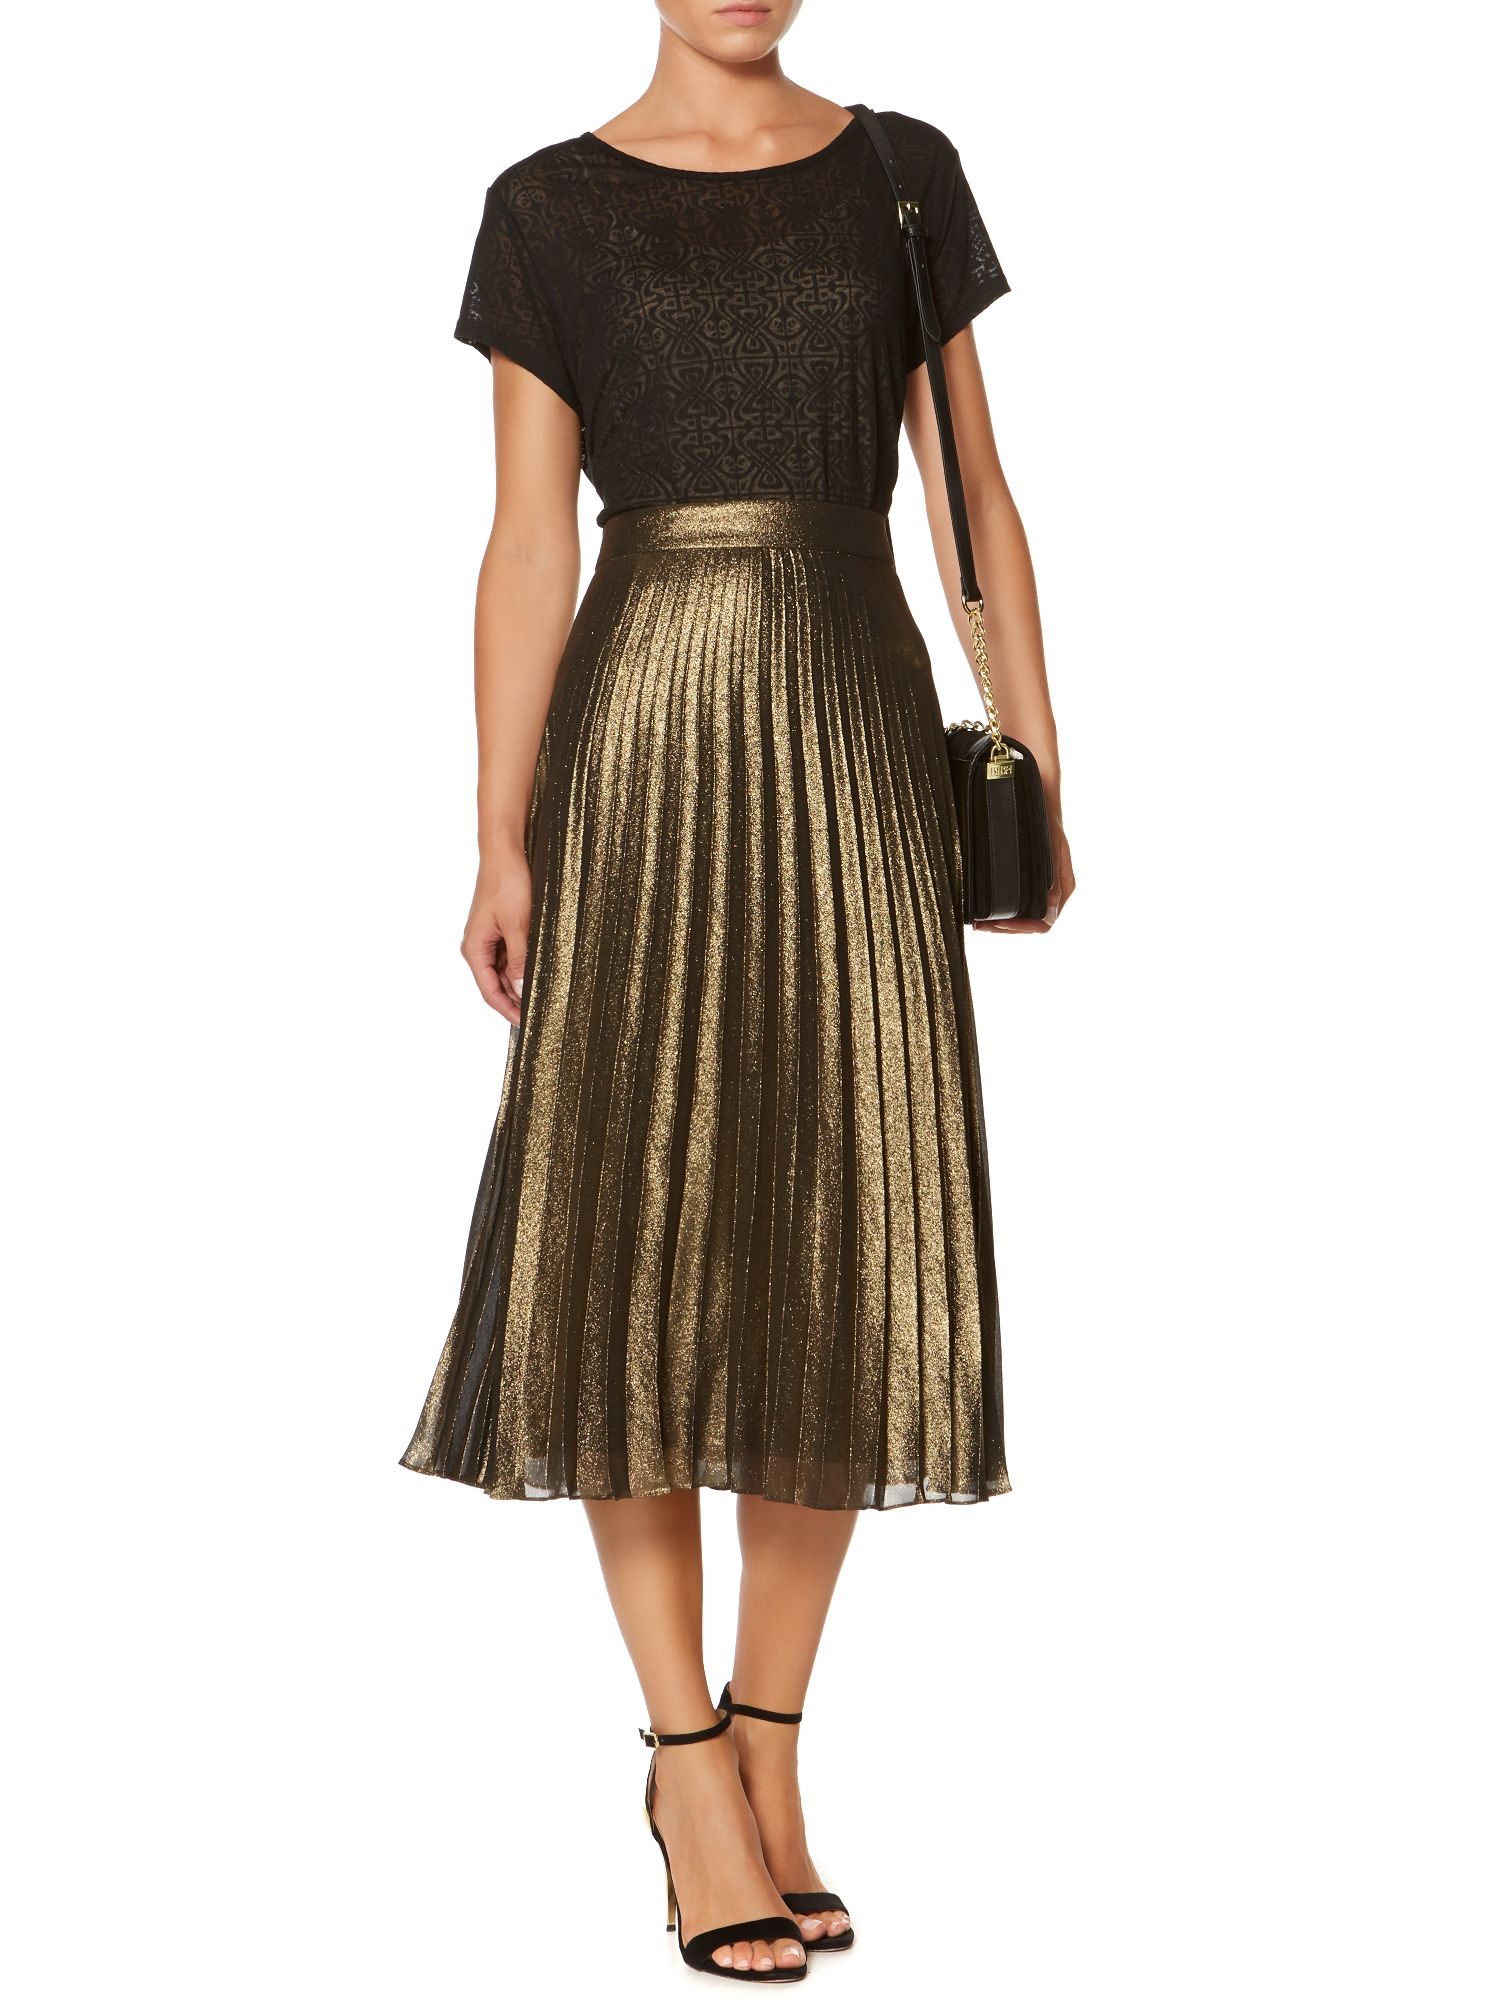 Biba Metallic Pleated Midi Skirt in Metallic | Lyst